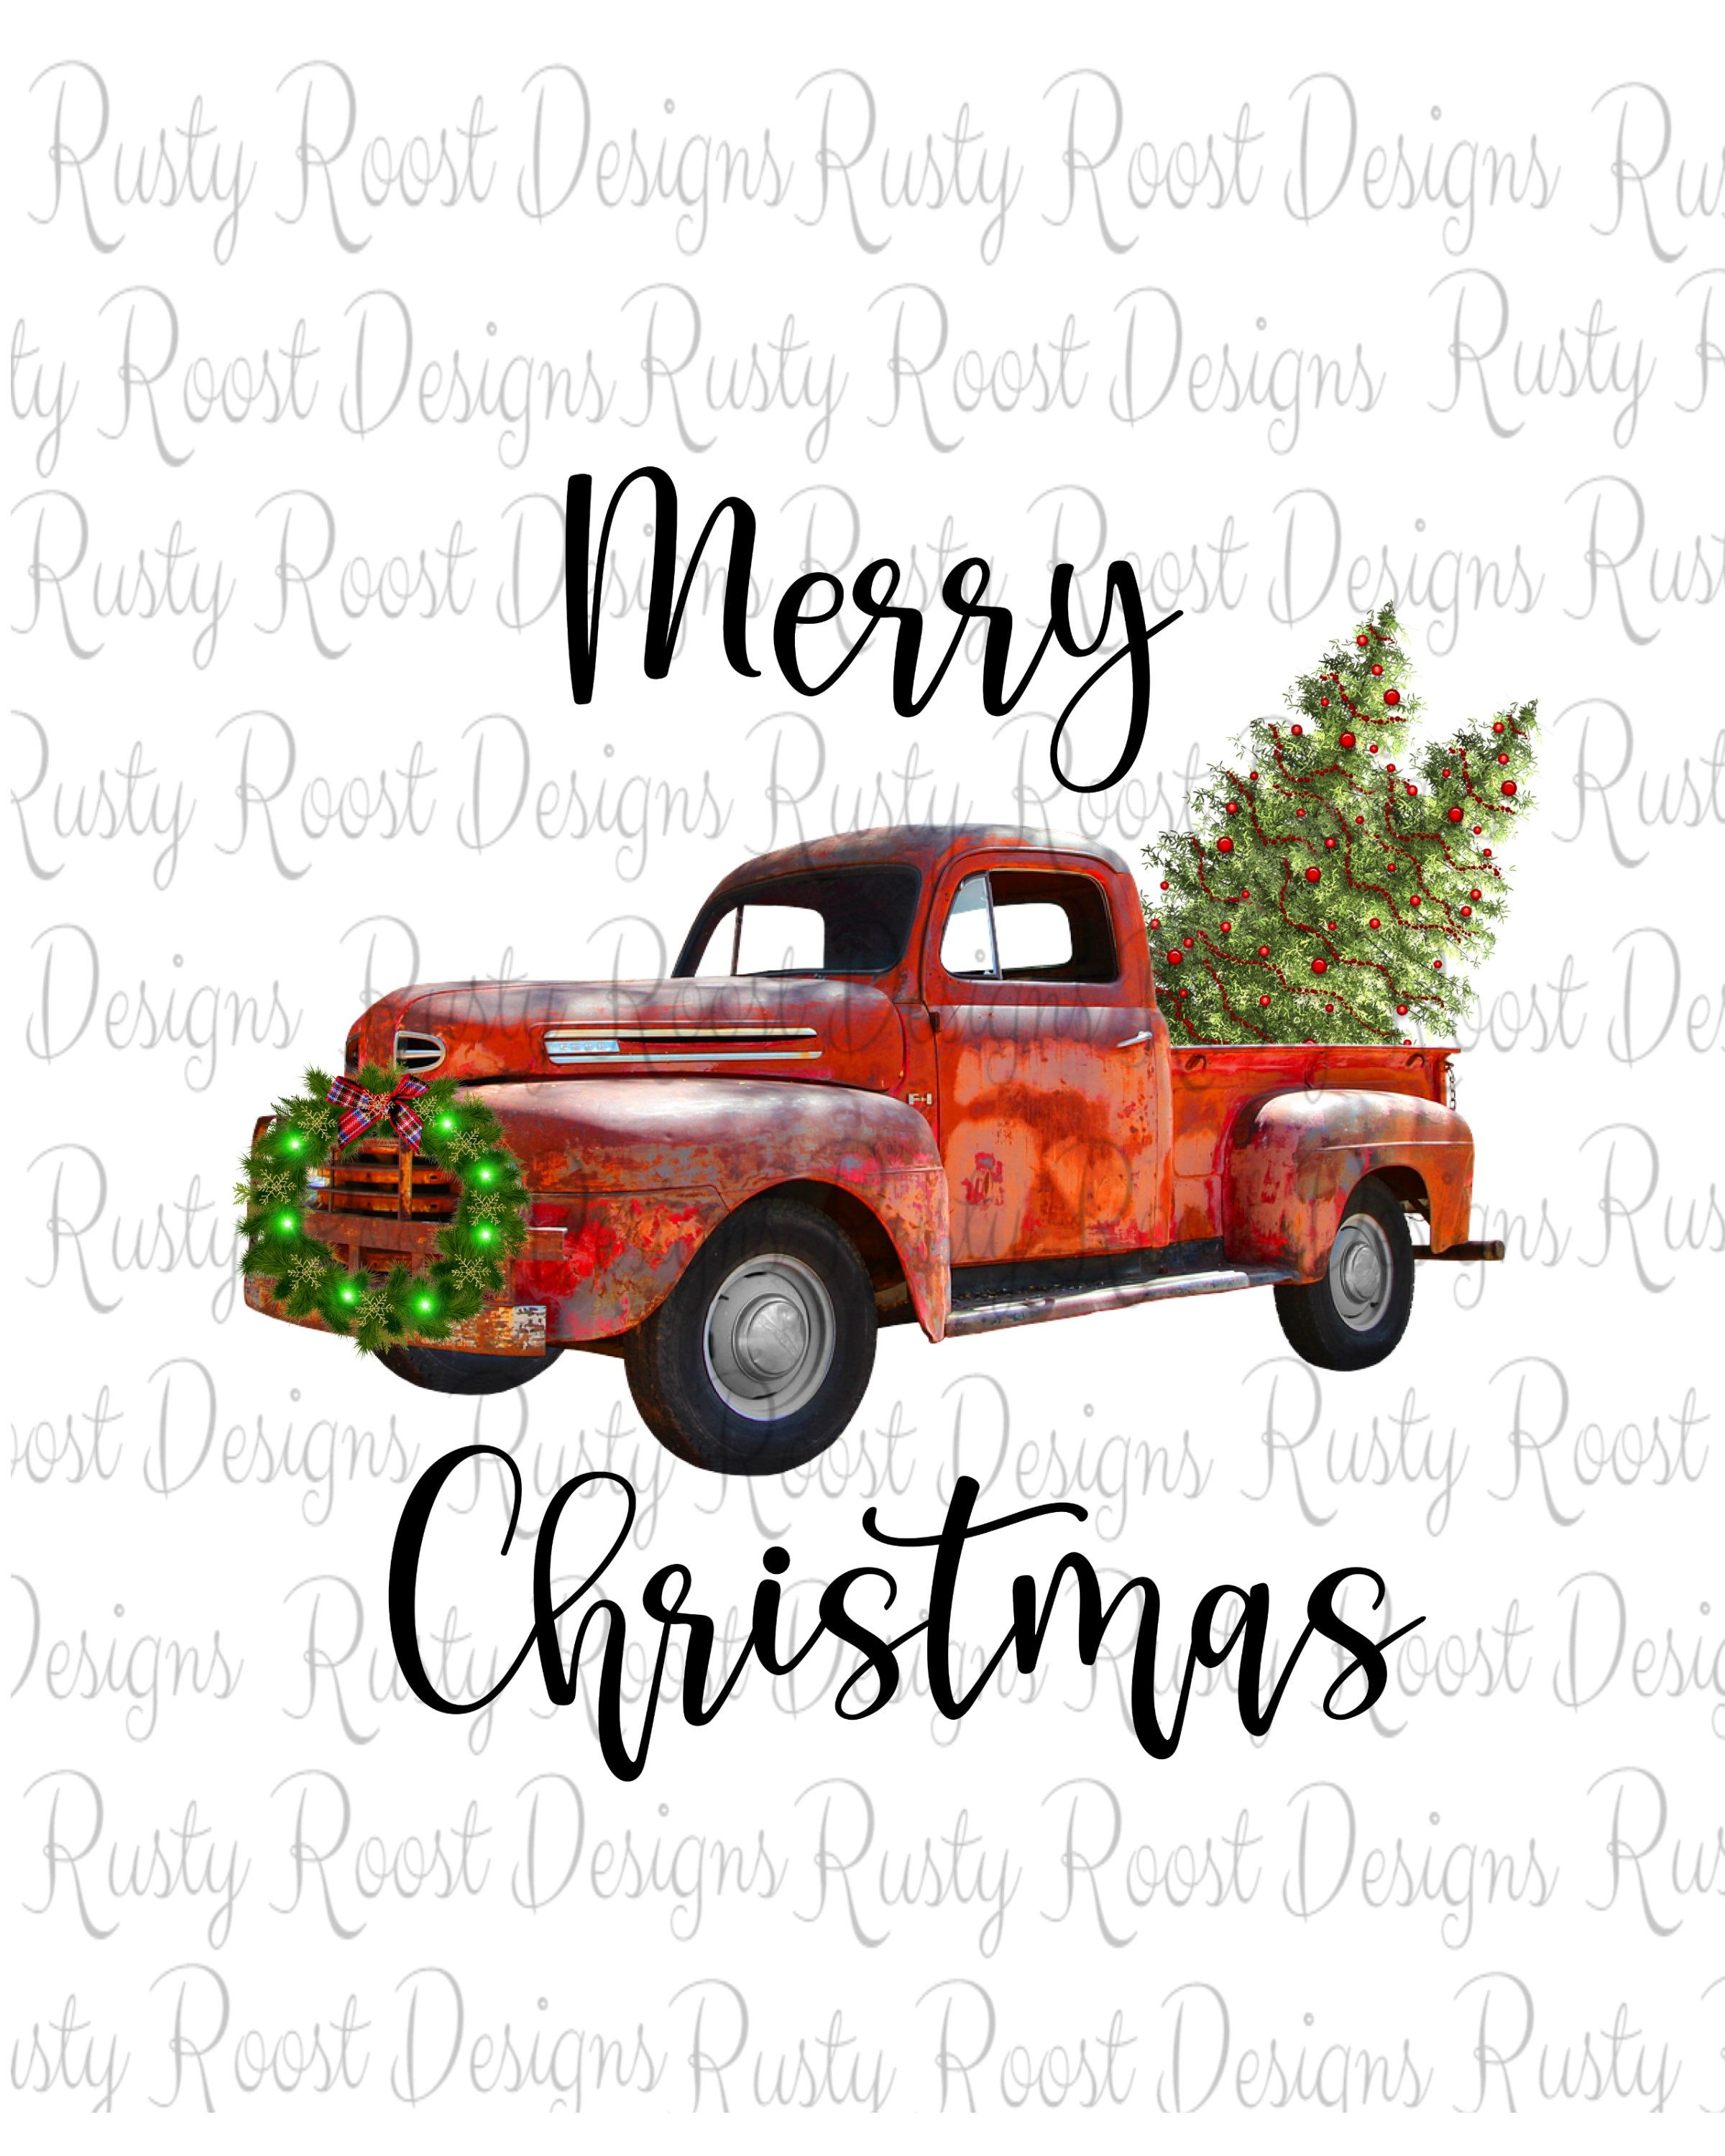 Merry Christmas Pngchristmas Sublimation Designs Etsy Christmas Truck Christmas Red Truck Christmas Paintings